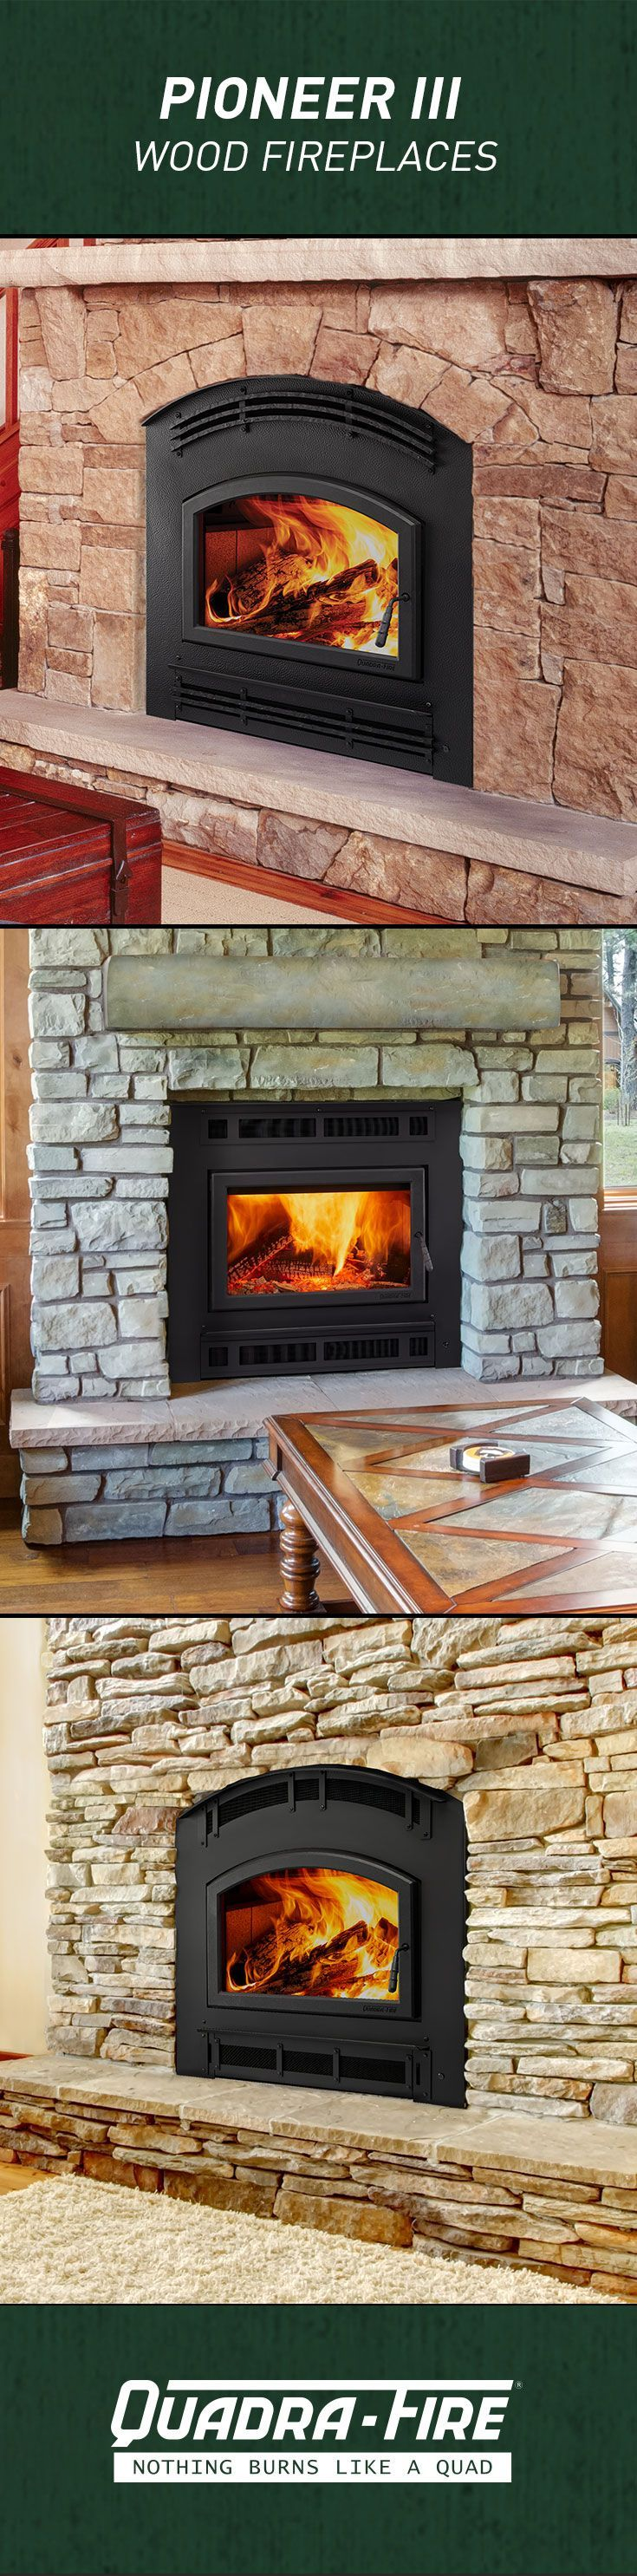 The Pioneer Iii Is The Largest And Most Powerful Wood Fireplace Produced By Quadra Fire Powered By Our Wood Fireplace Wood Burning Fireplace Inserts Fireplace